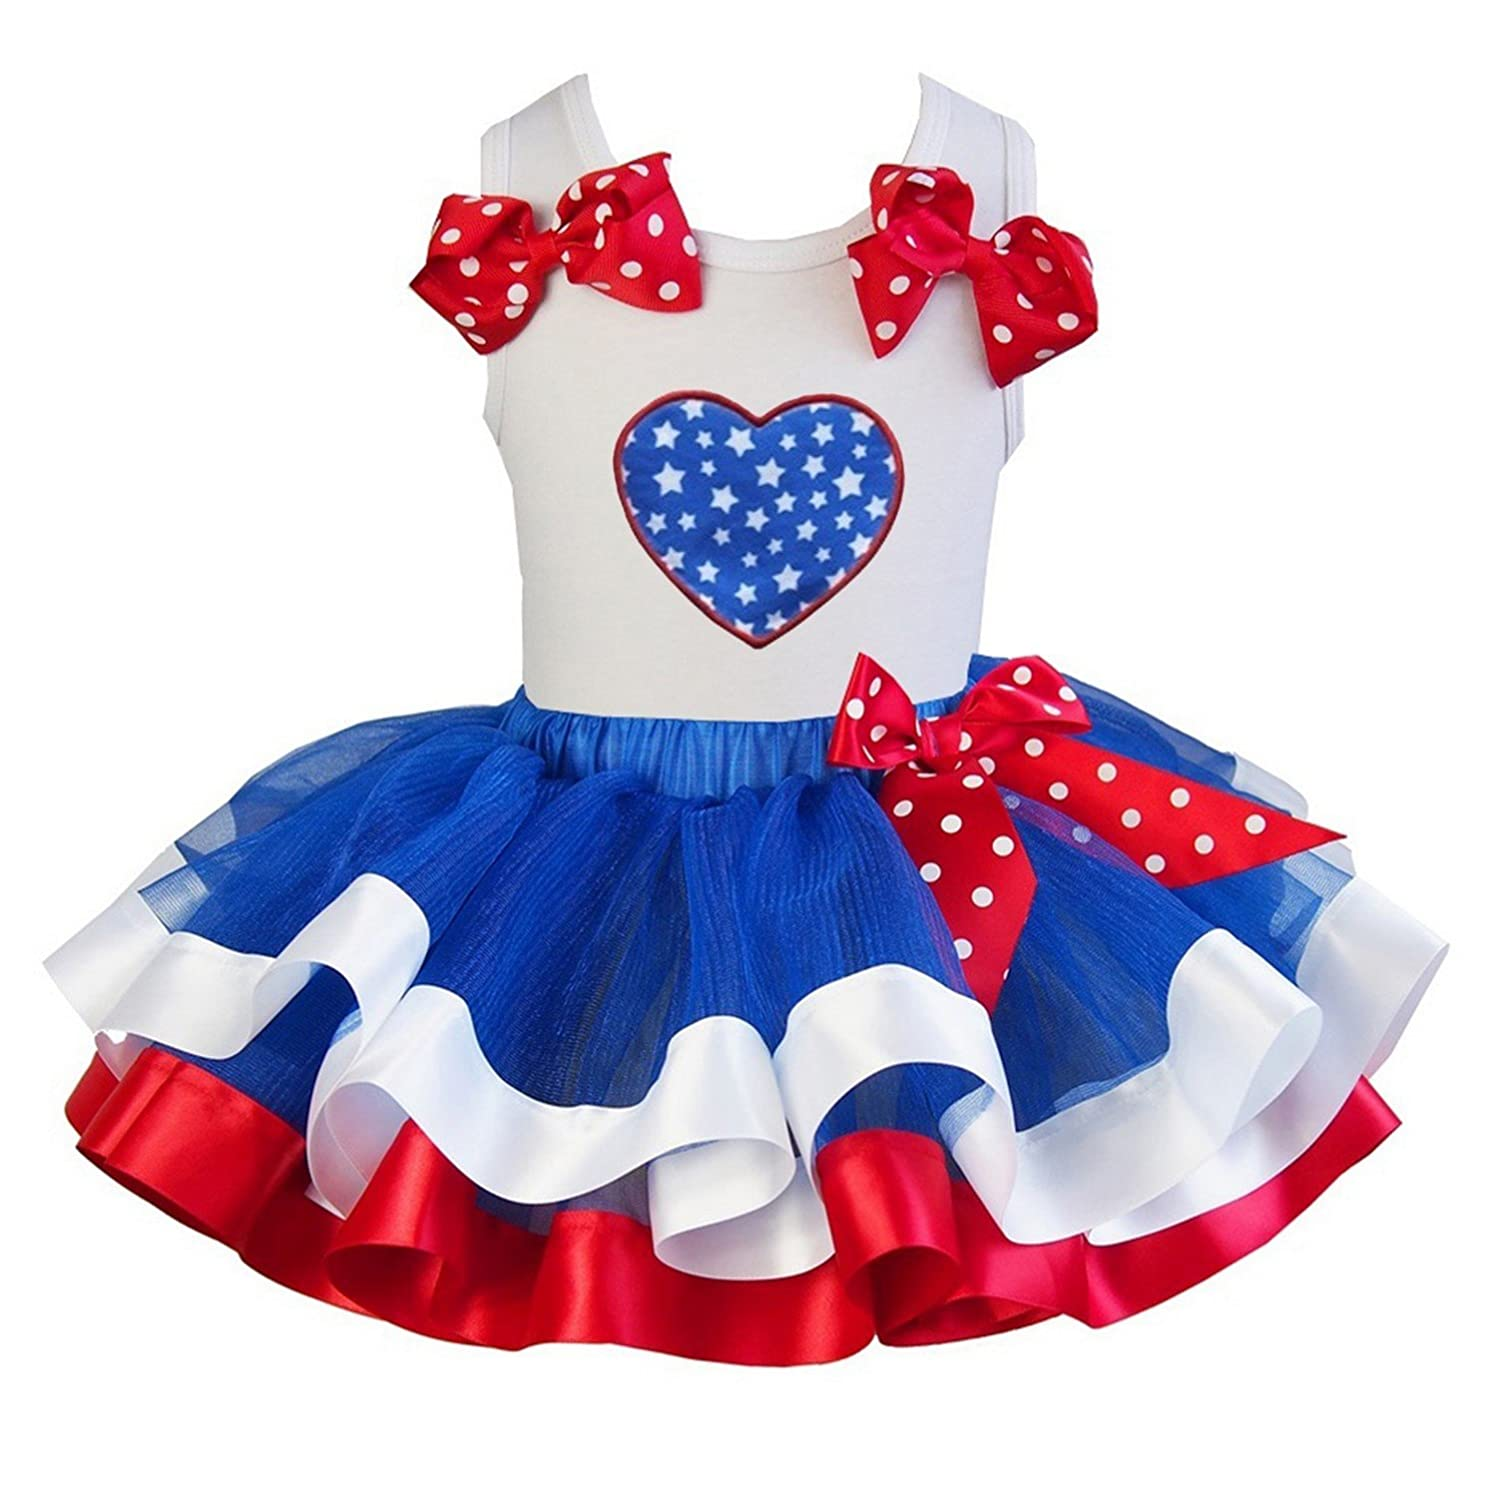 Kirei Sui Girl Royal Blue White Red Satin Trimmed Tutu & Heart Outfit